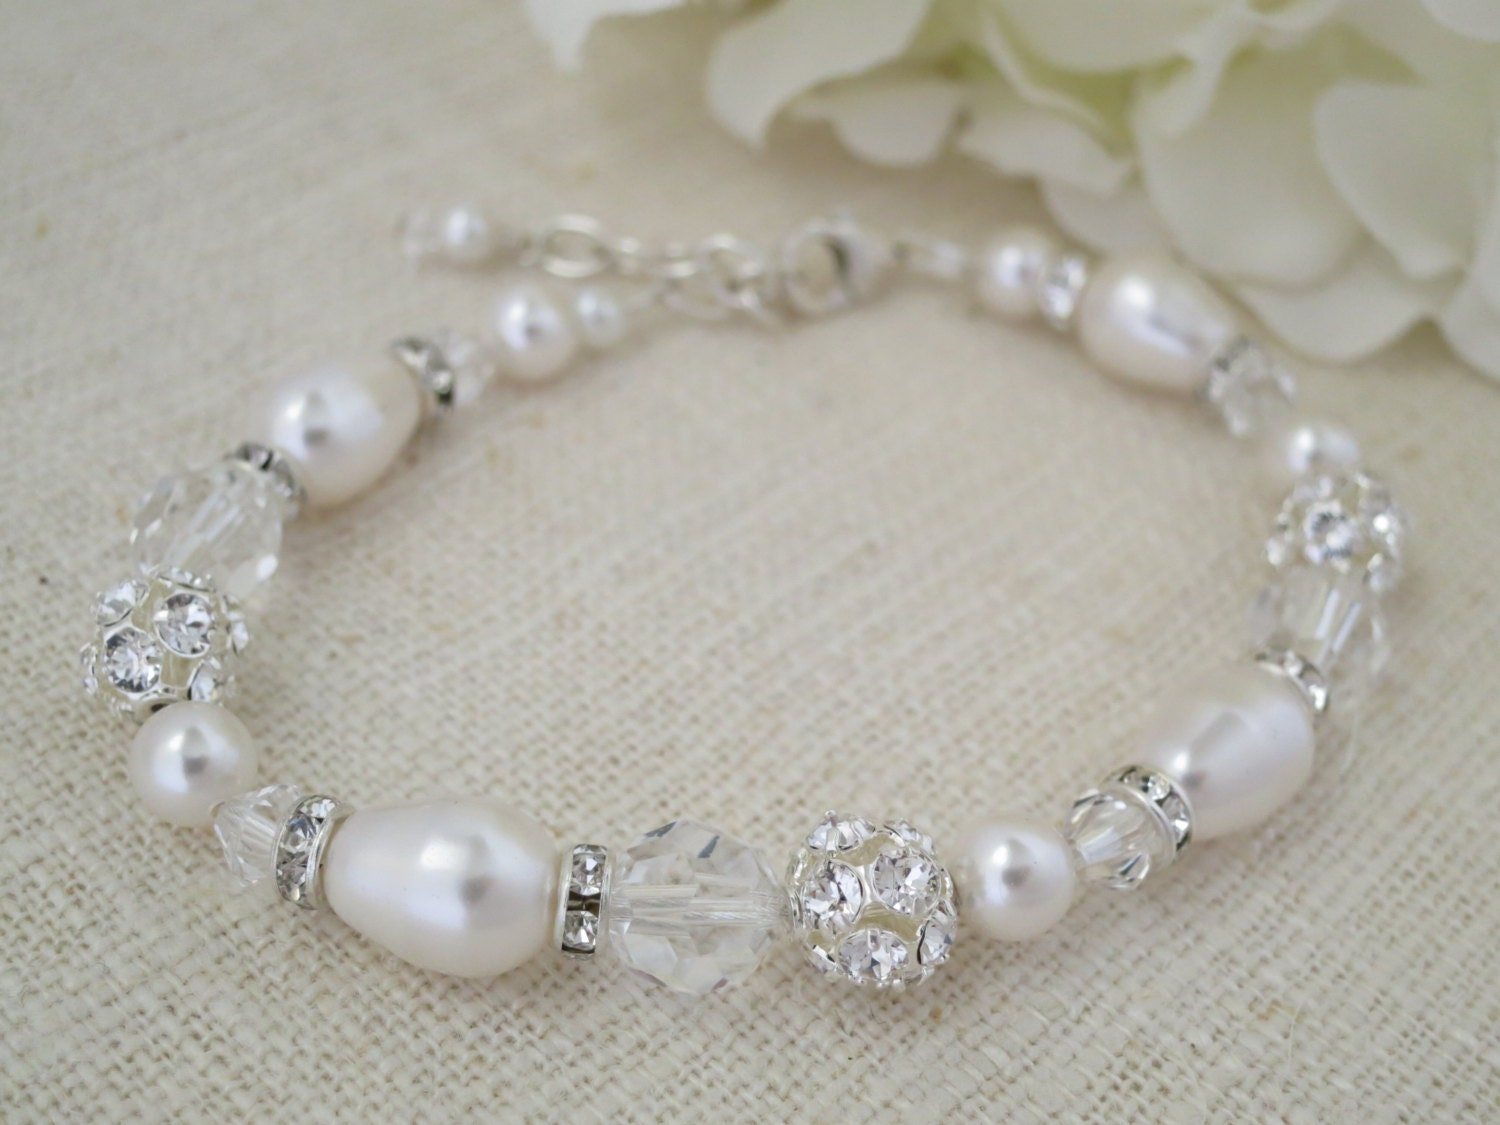 Swarovski crystal and pearl bridal bracelet, Pearl teardrop wedding bracelet